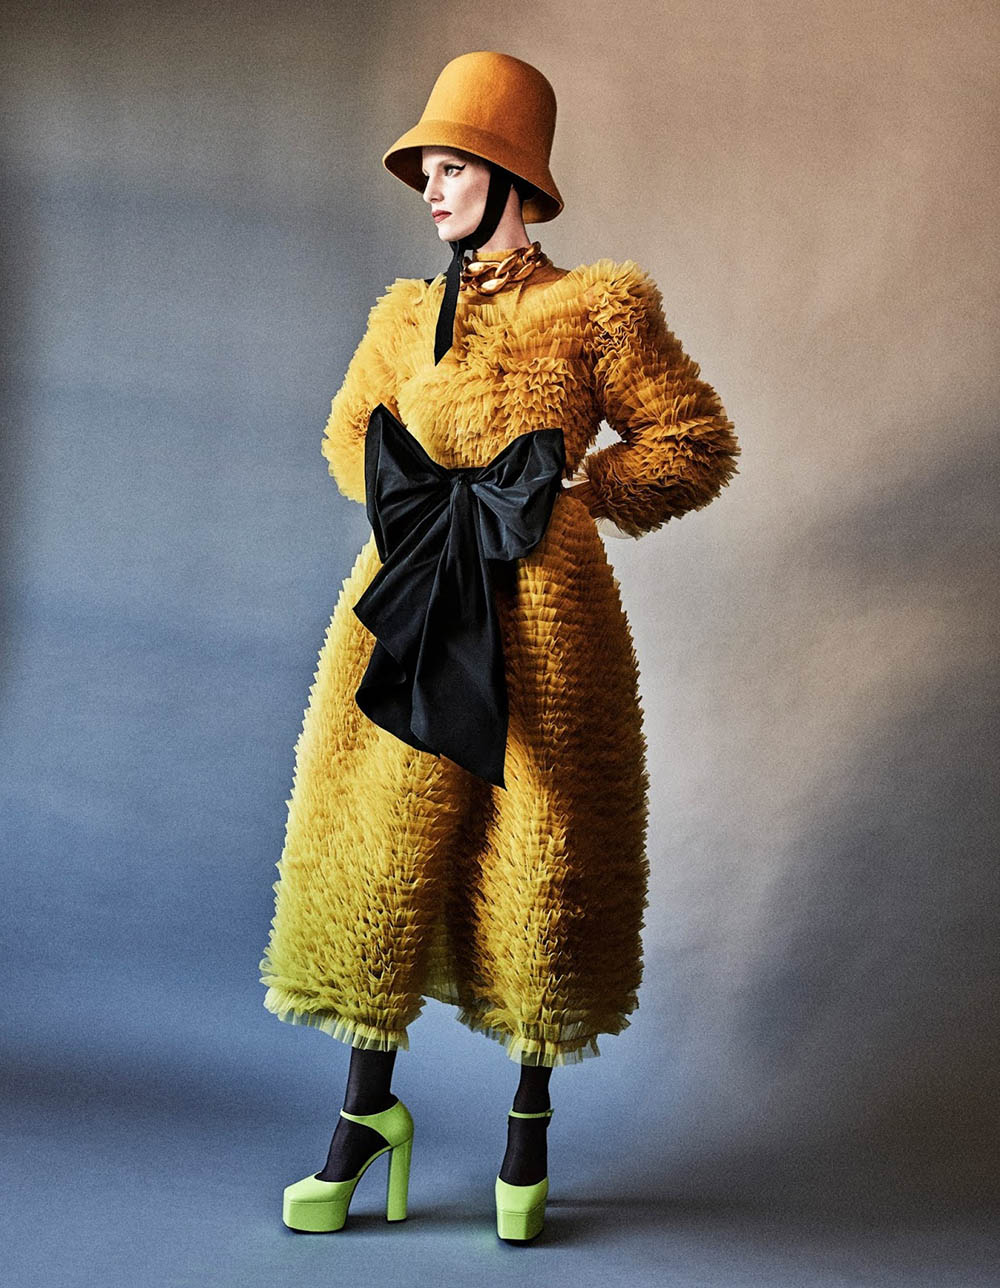 Iris Strubegger by Giampaolo Sgura for Vogue Germany December 2019